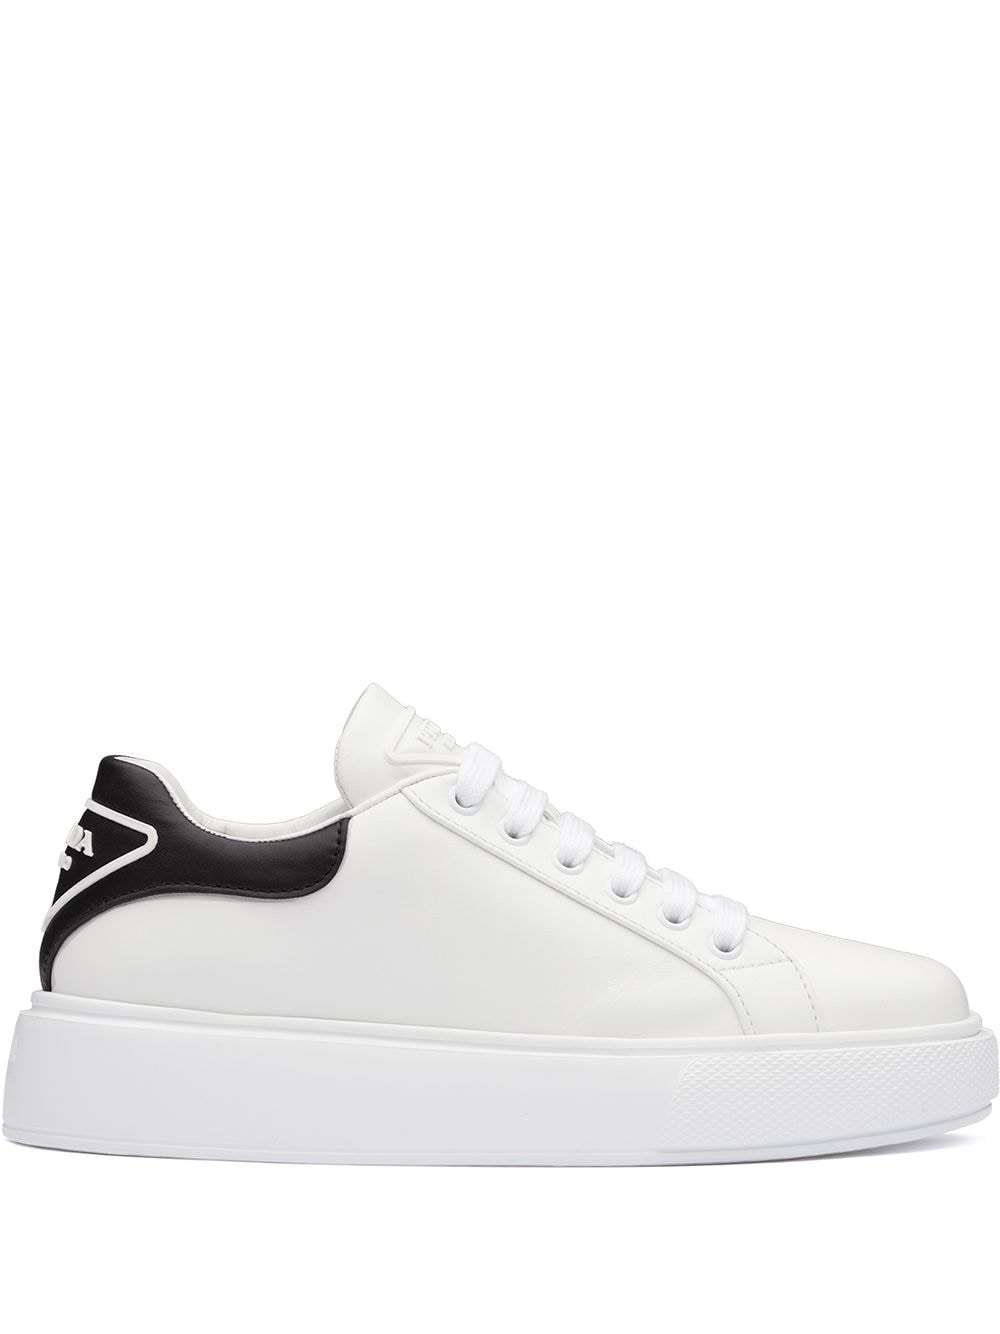 White calf leather contrast-heel low-top sneakers from PRADA featuring branded heel counter, logo-em